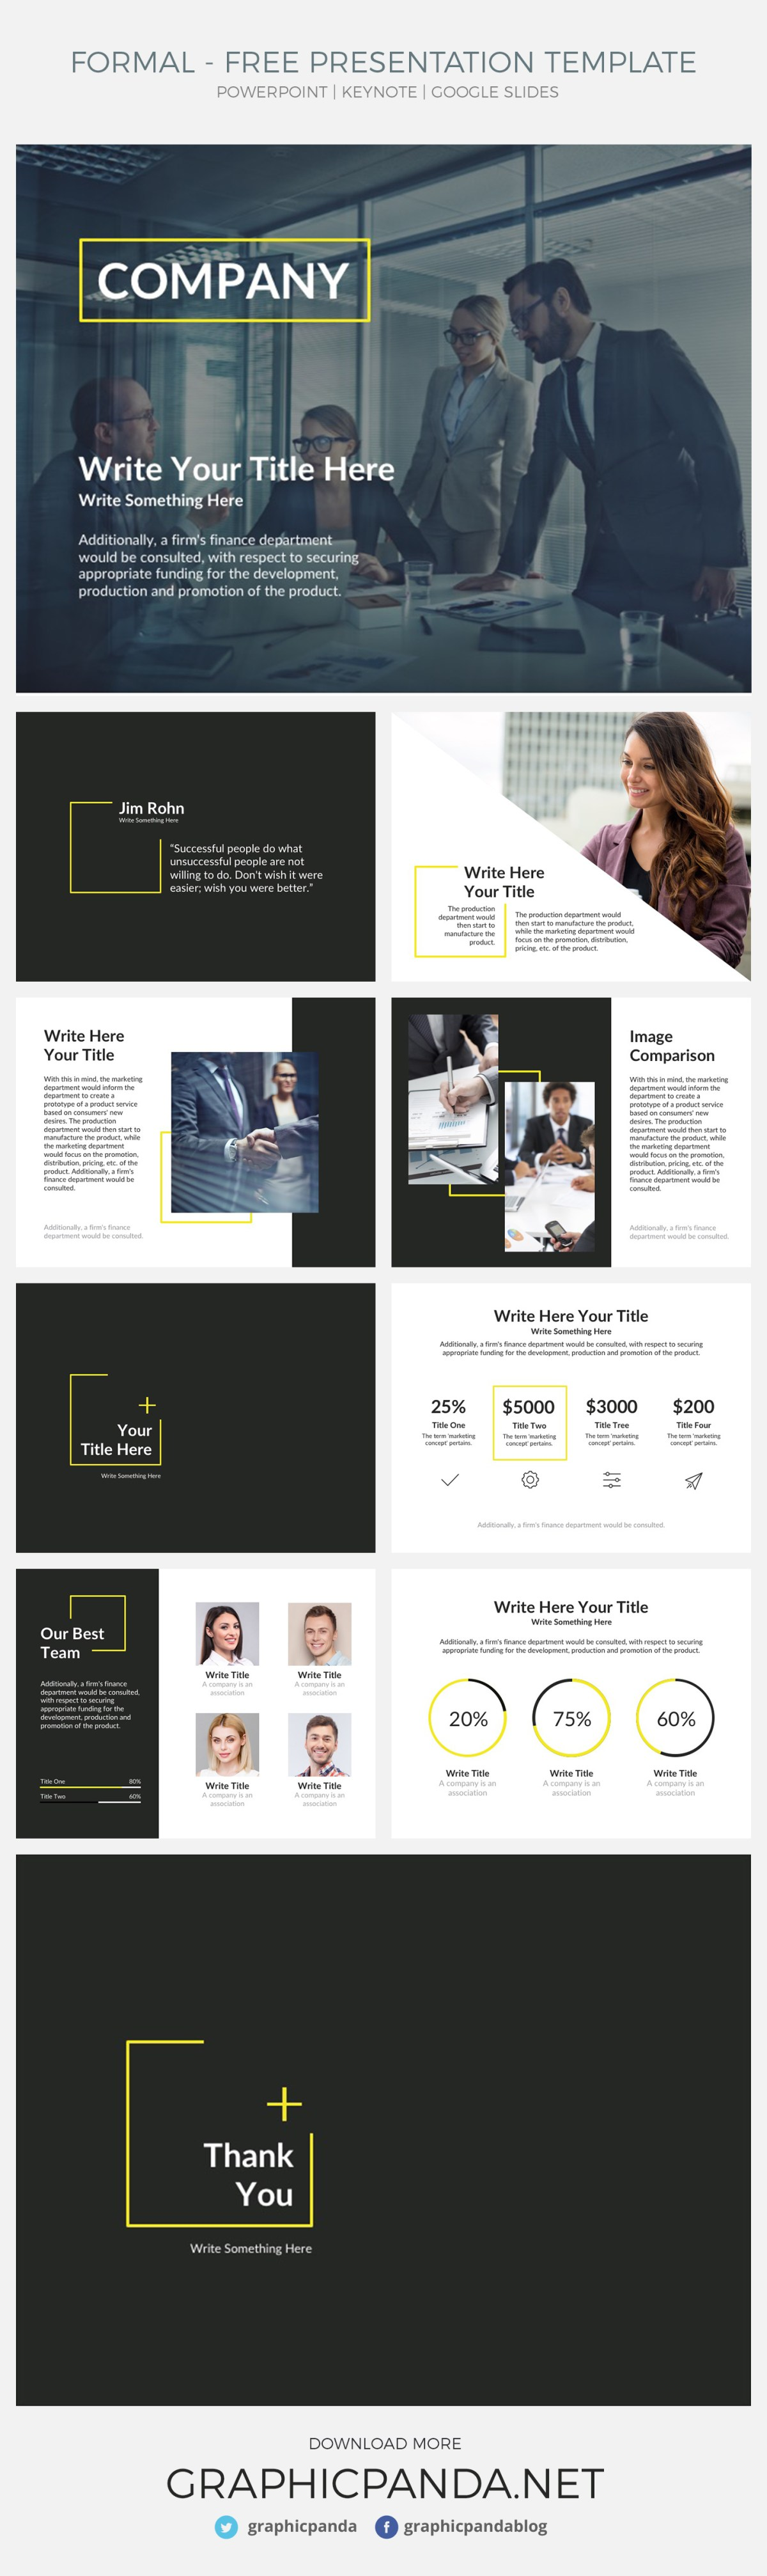 Looking for a way to make your presentations more interesting and eye-catching? It can be difficult to design your own professional slides, especially when trying to focus on important content. With these free powerpoint template, you can worry about what you're trying to say, and not about what your audience thinks of your color scheme or how you wished you would have spent more time on photo placement.